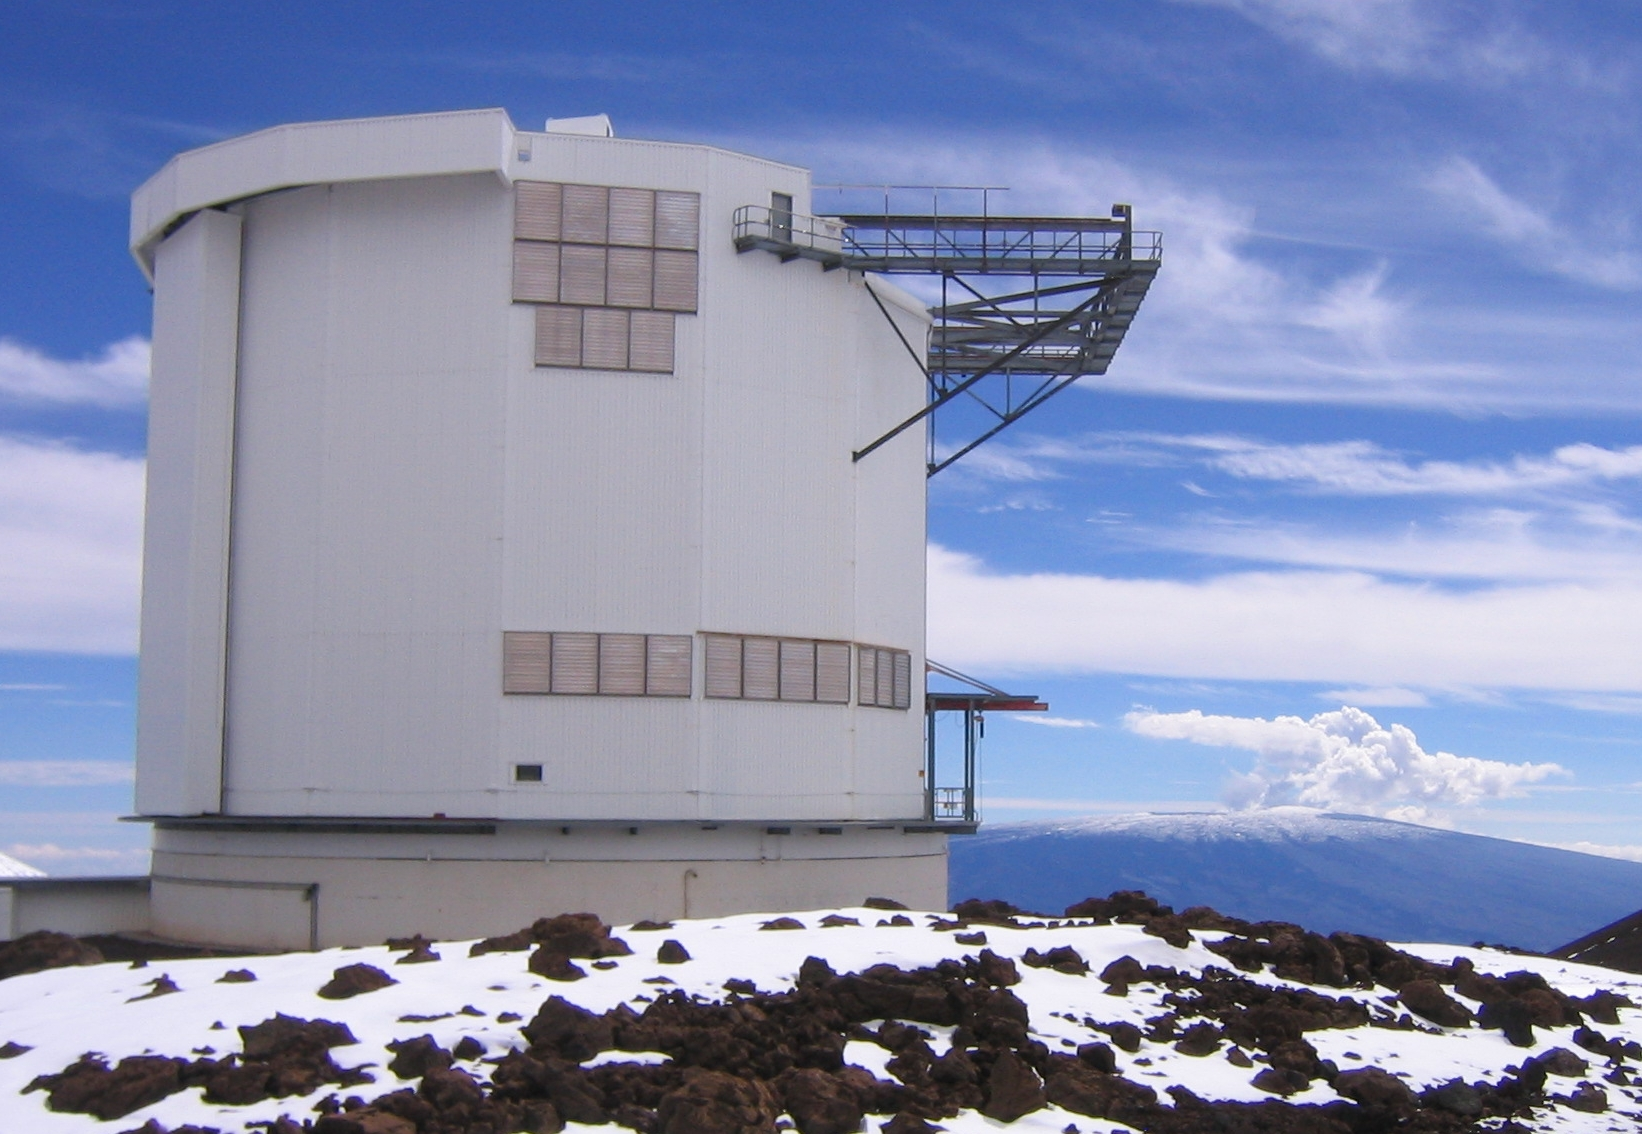 With a diameter of 15m the JCMT is the largest telescope in the world designed specifically to operate at submillimetre wavelengths. Credit: Joint Astronomy Centre